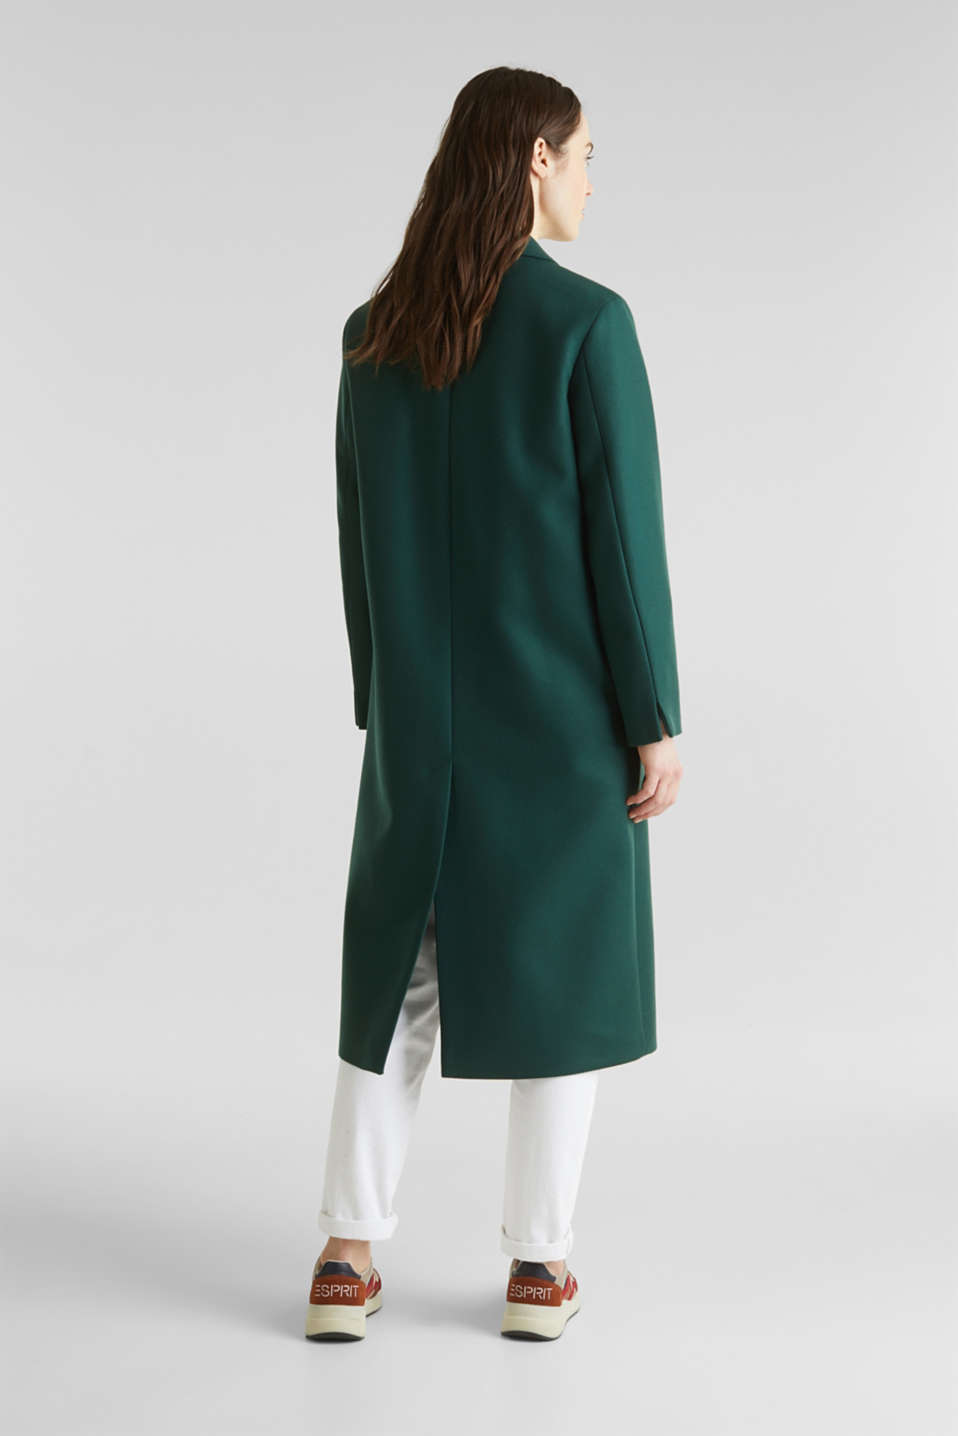 Wool blend: Coat made of Italian yarn, BOTTLE GREEN, detail image number 3